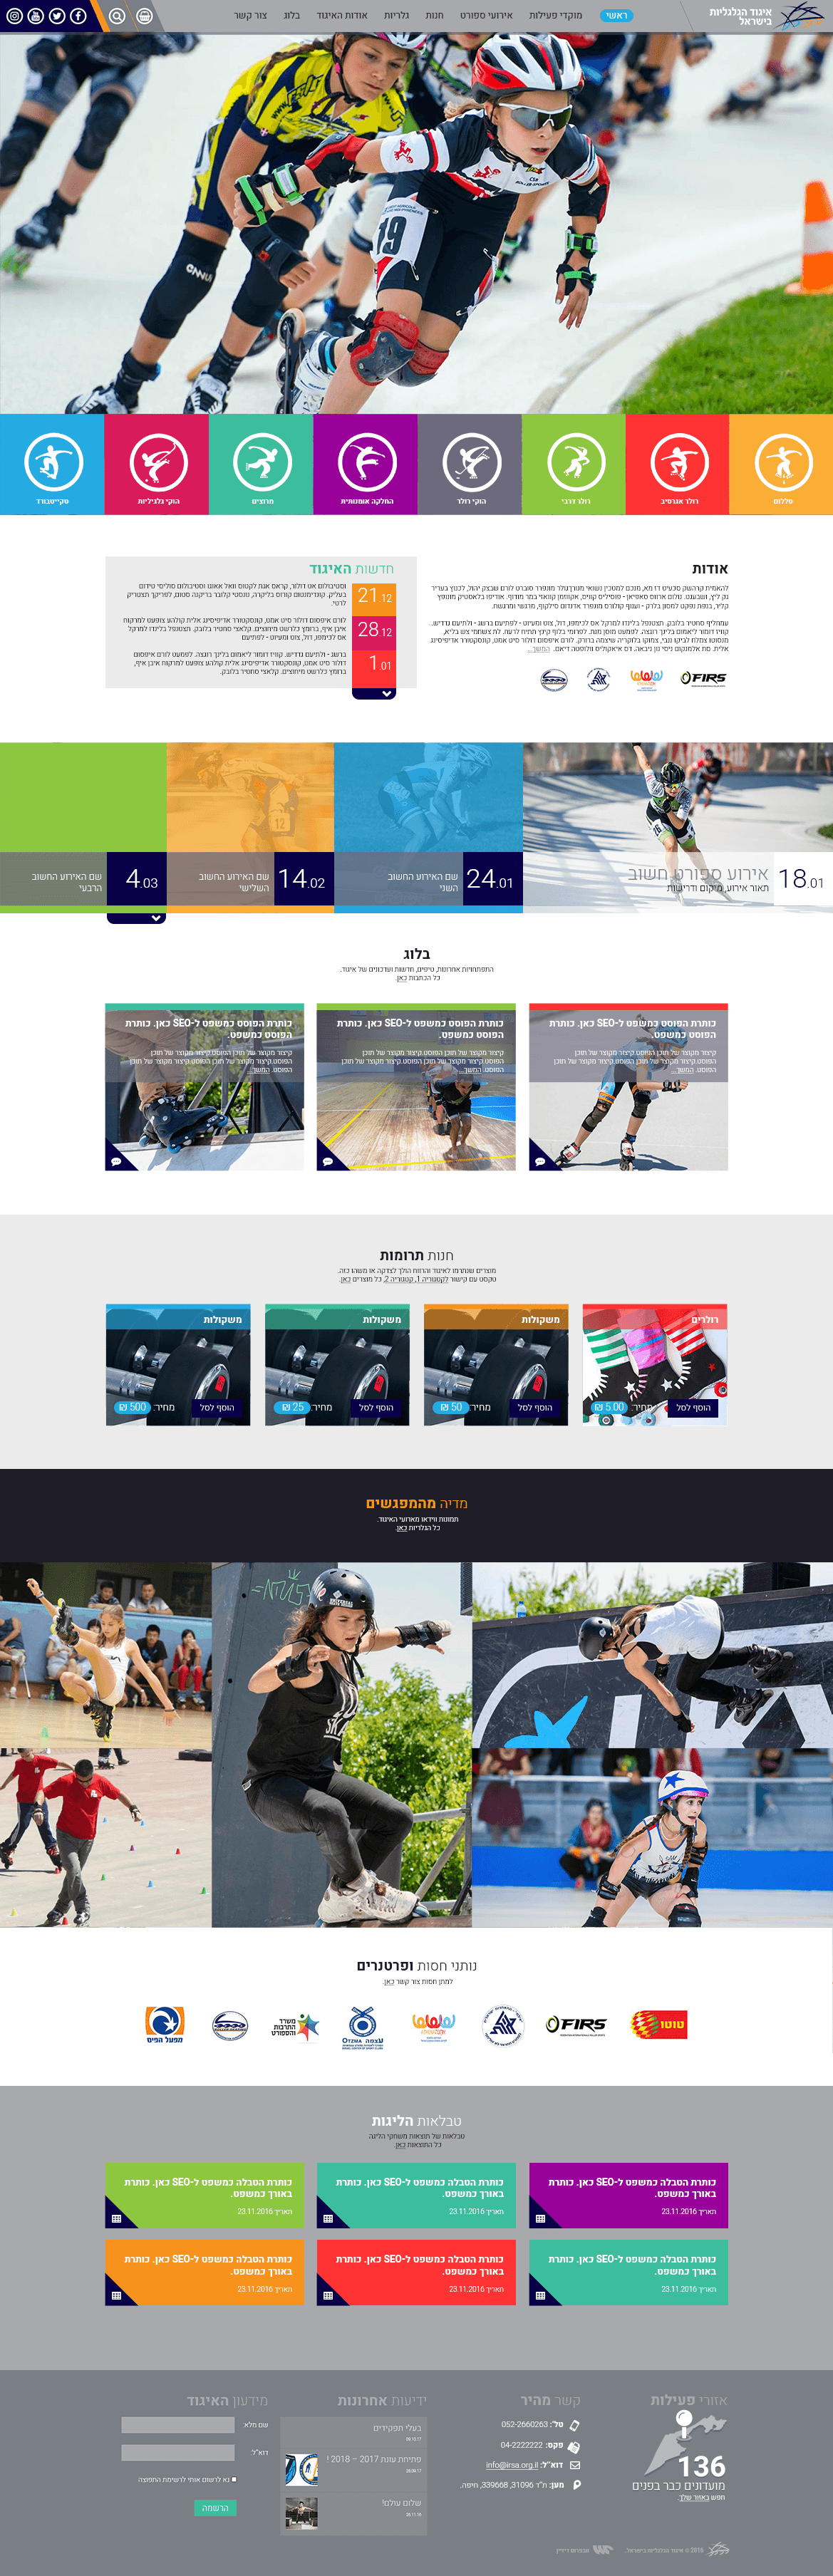 Sport Association Website Design Screenshot